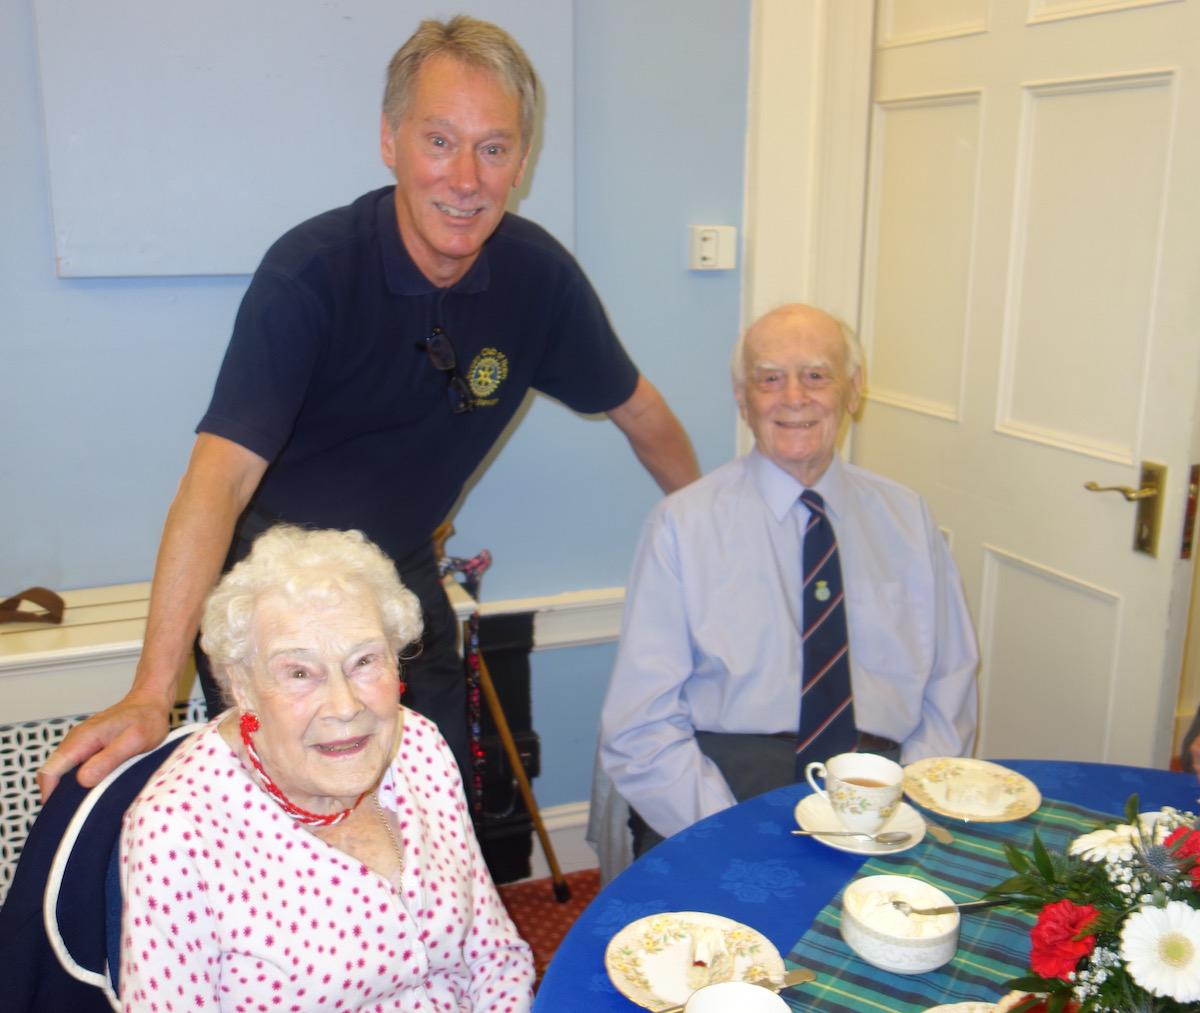 Community & Vocational - The Club hosted a Tea for a number of 90 year olds in Nairnshire in celebration of the Queen's Birthday